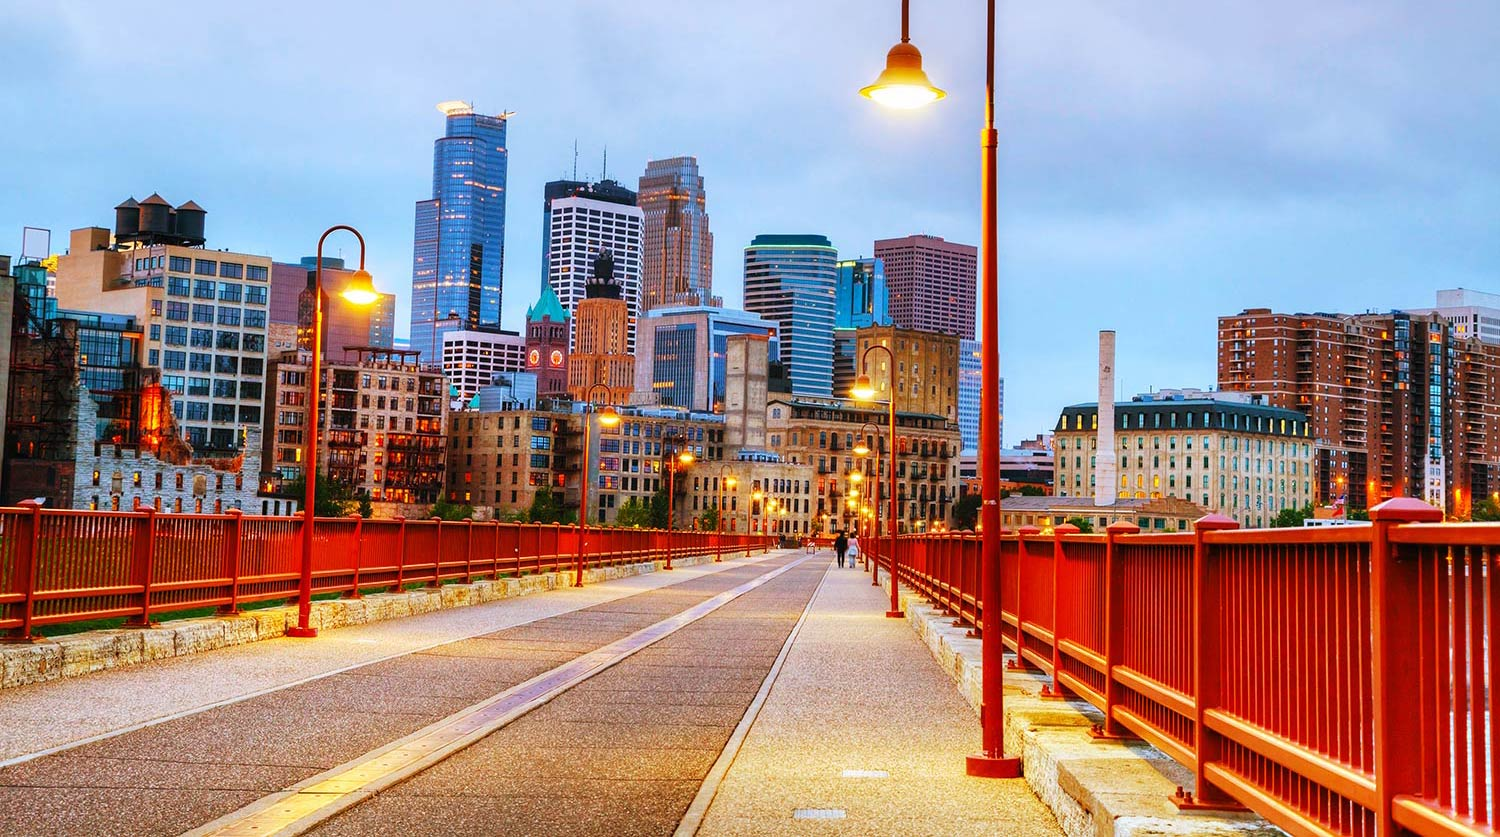 Illuminated street lined with red fences leads into downtown Minneapolis